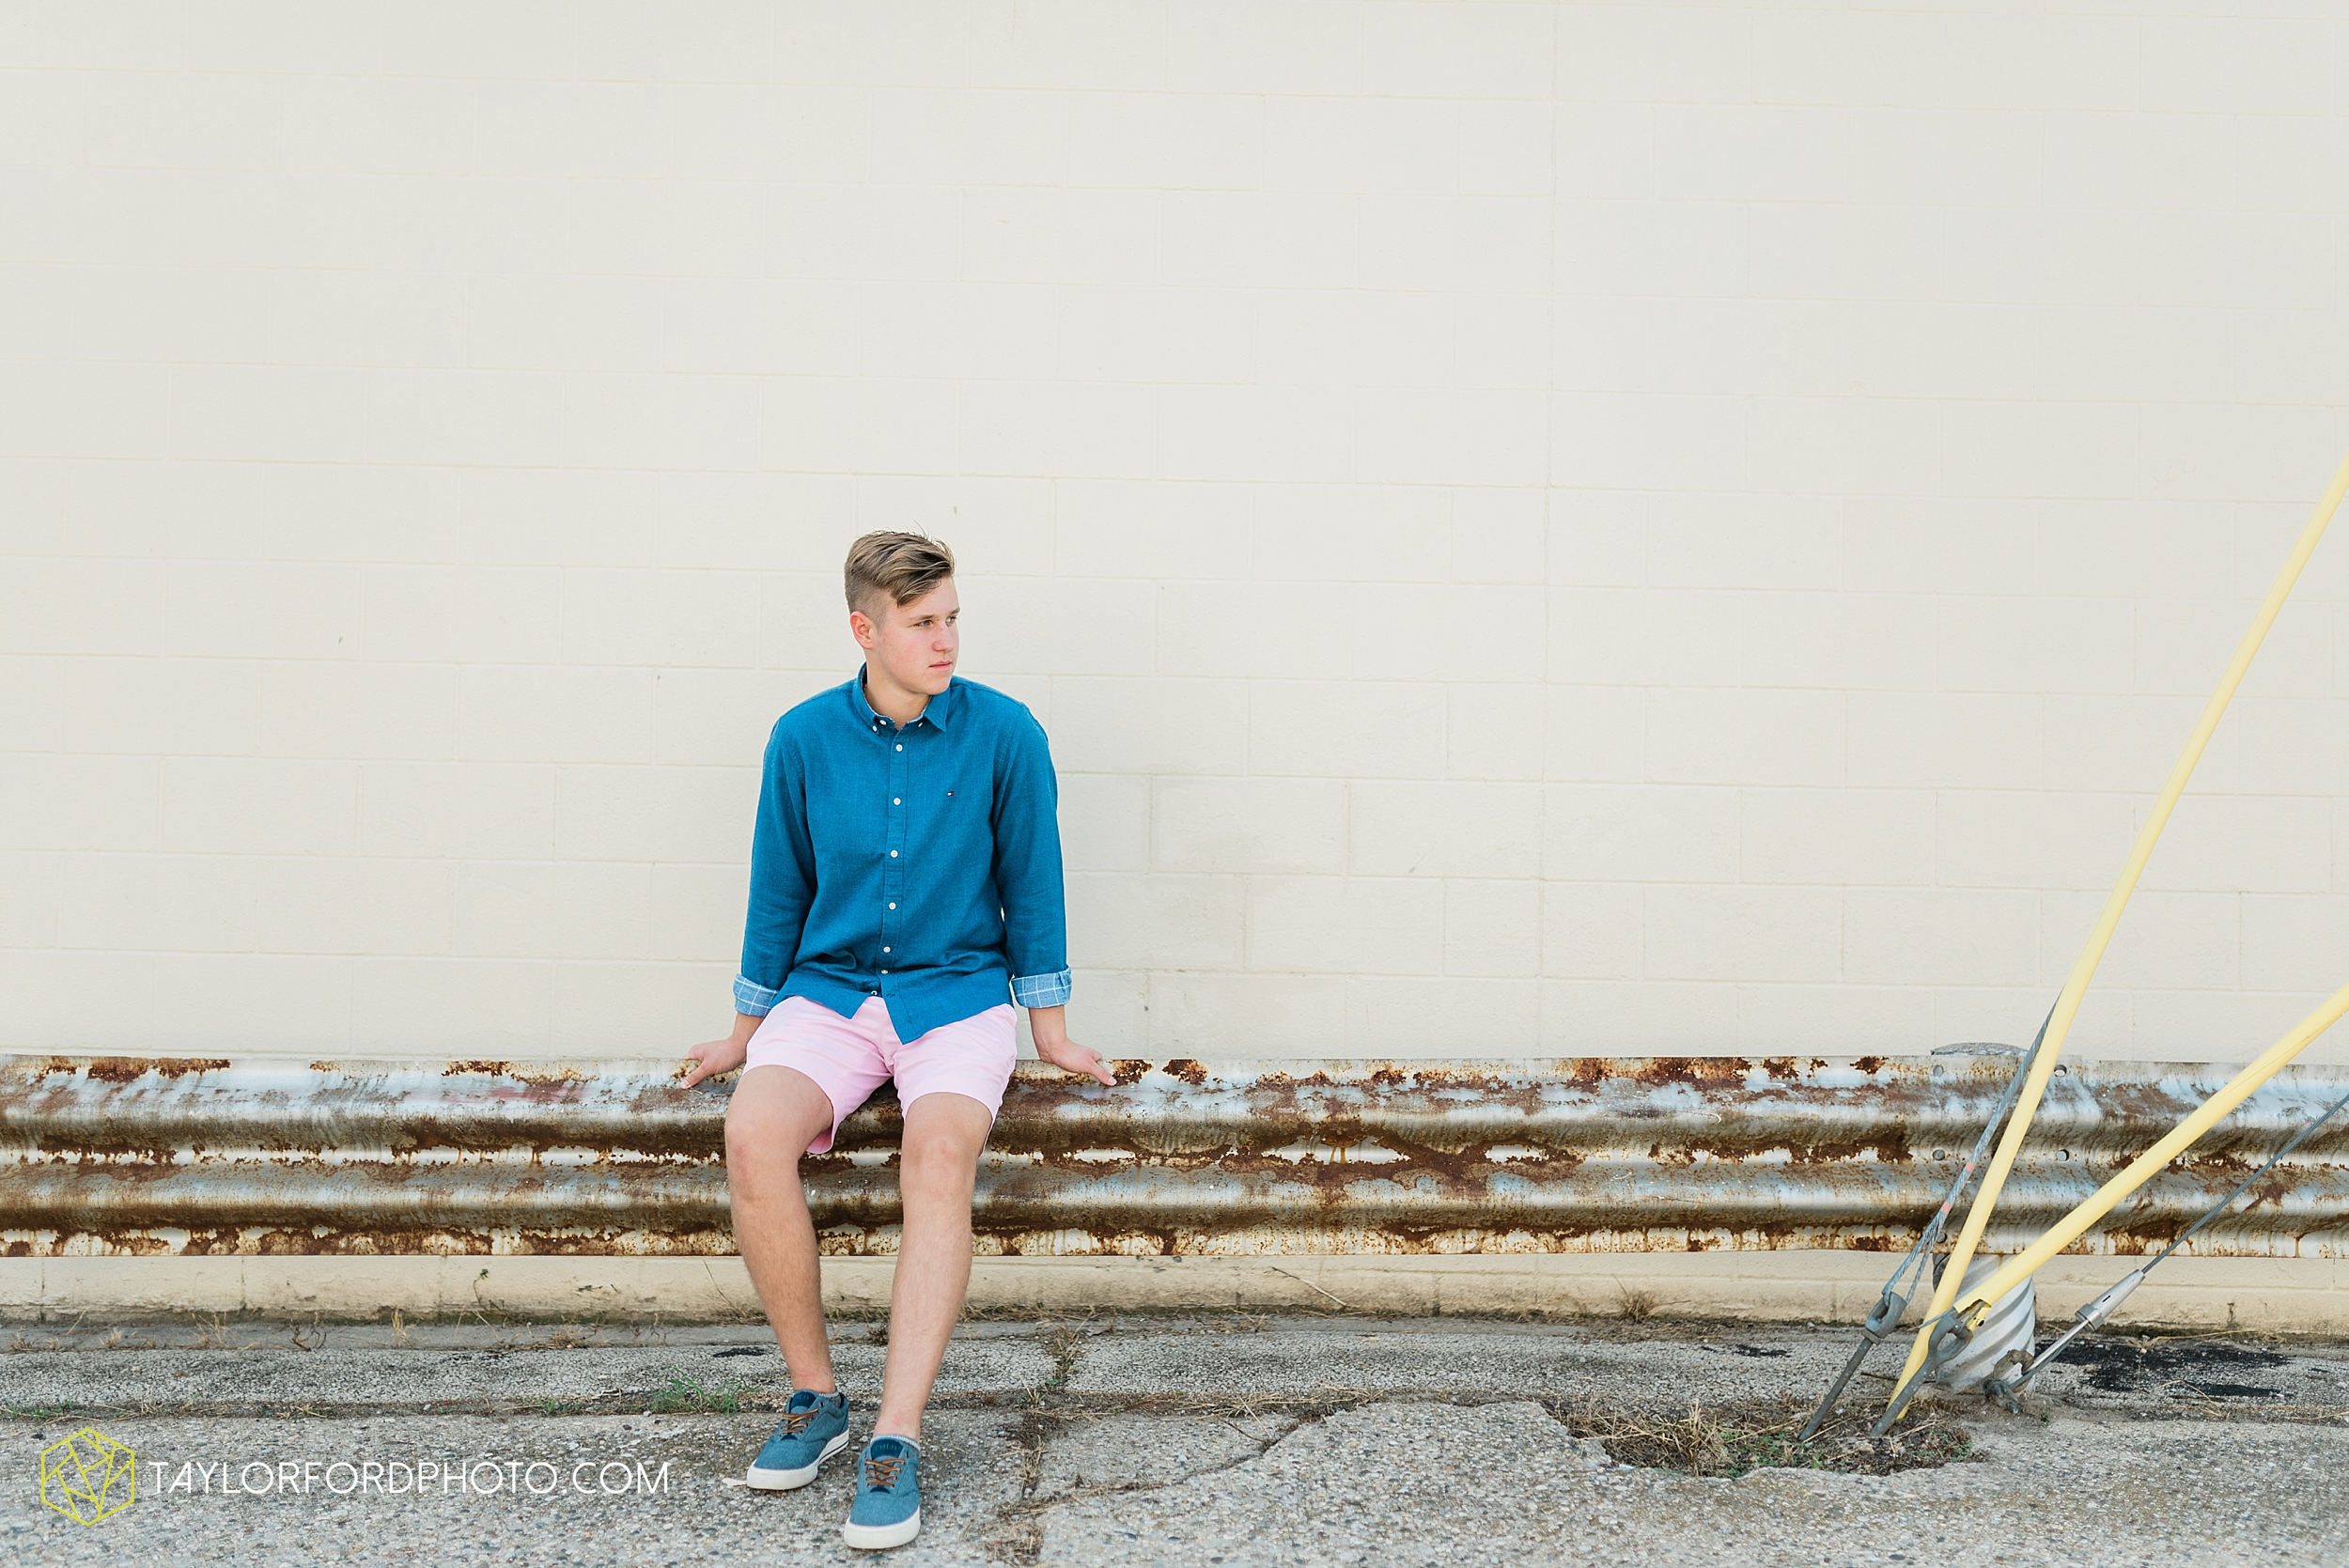 alex-duffus-fort-wayne-indiana-senior-caroll-high-school-chargers-photographer-taylor-ford-photography_0461.jpg